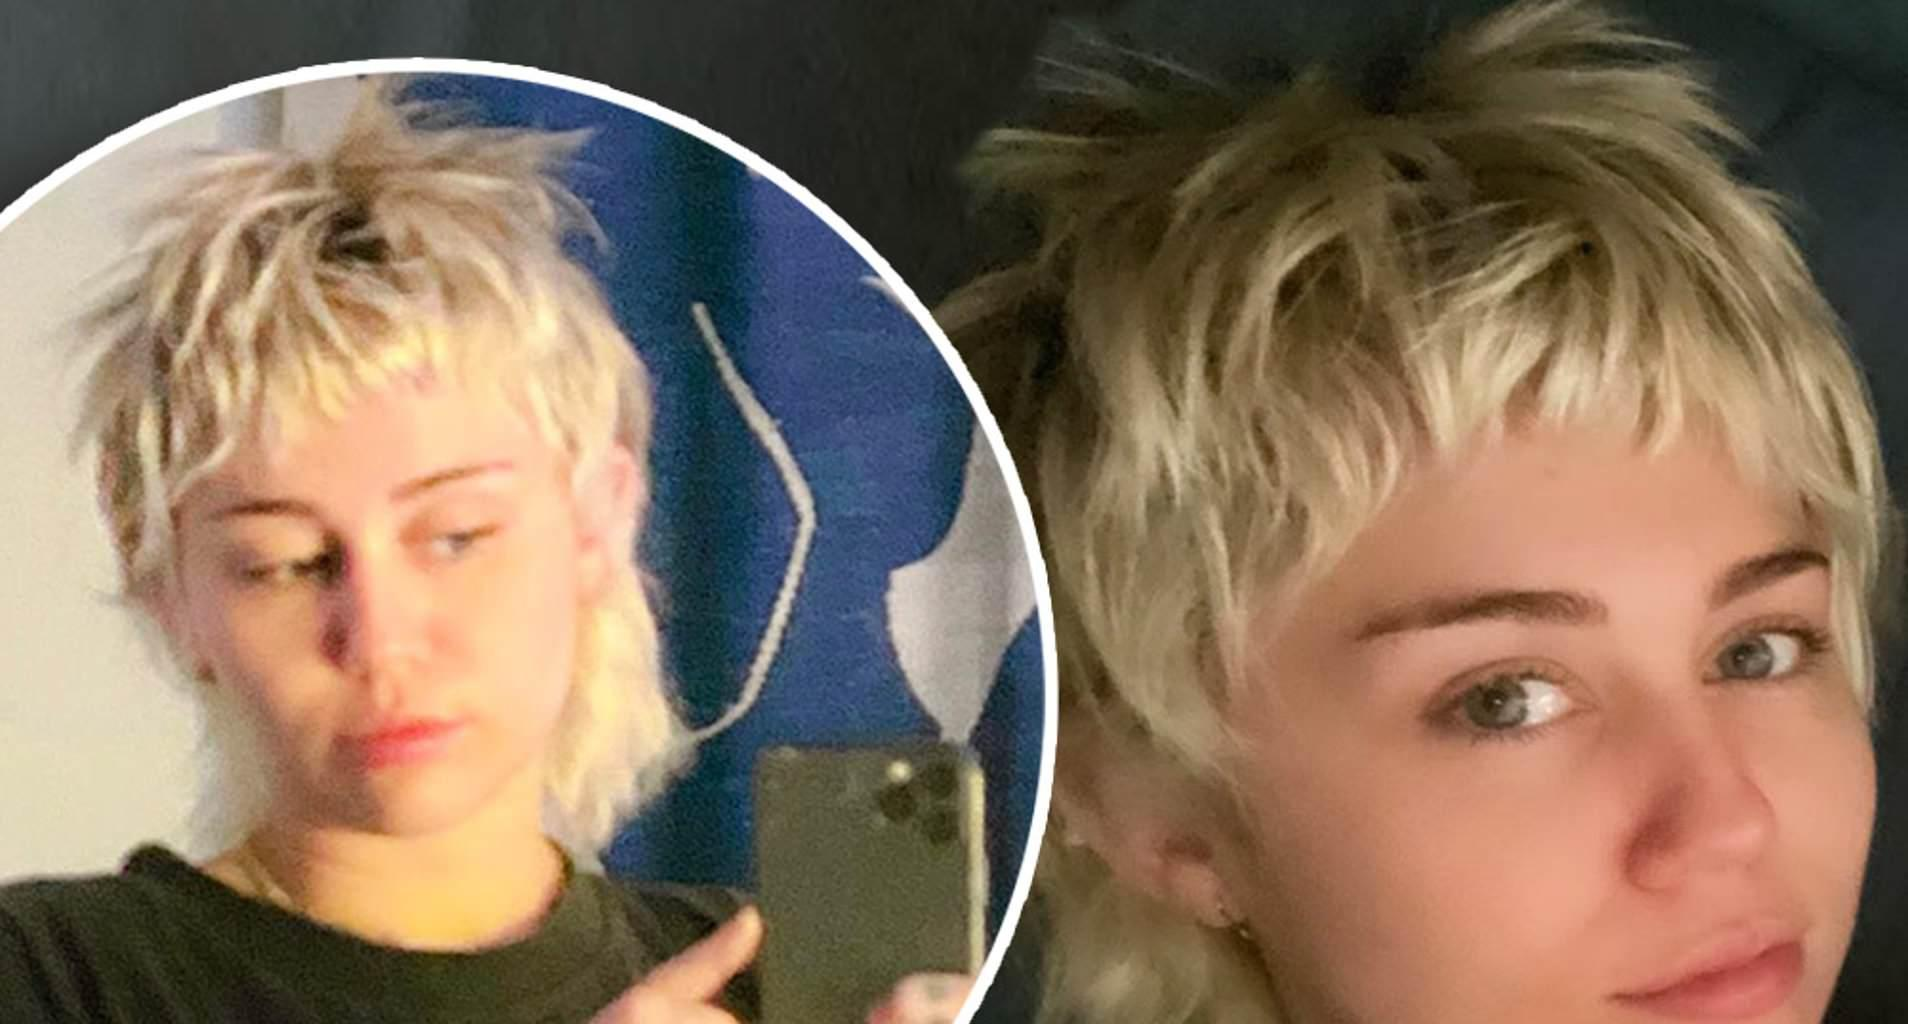 Miley Cyrus Cuts Her Hair In Quarantine - Check Out The Pixie-Mullet 'Do!